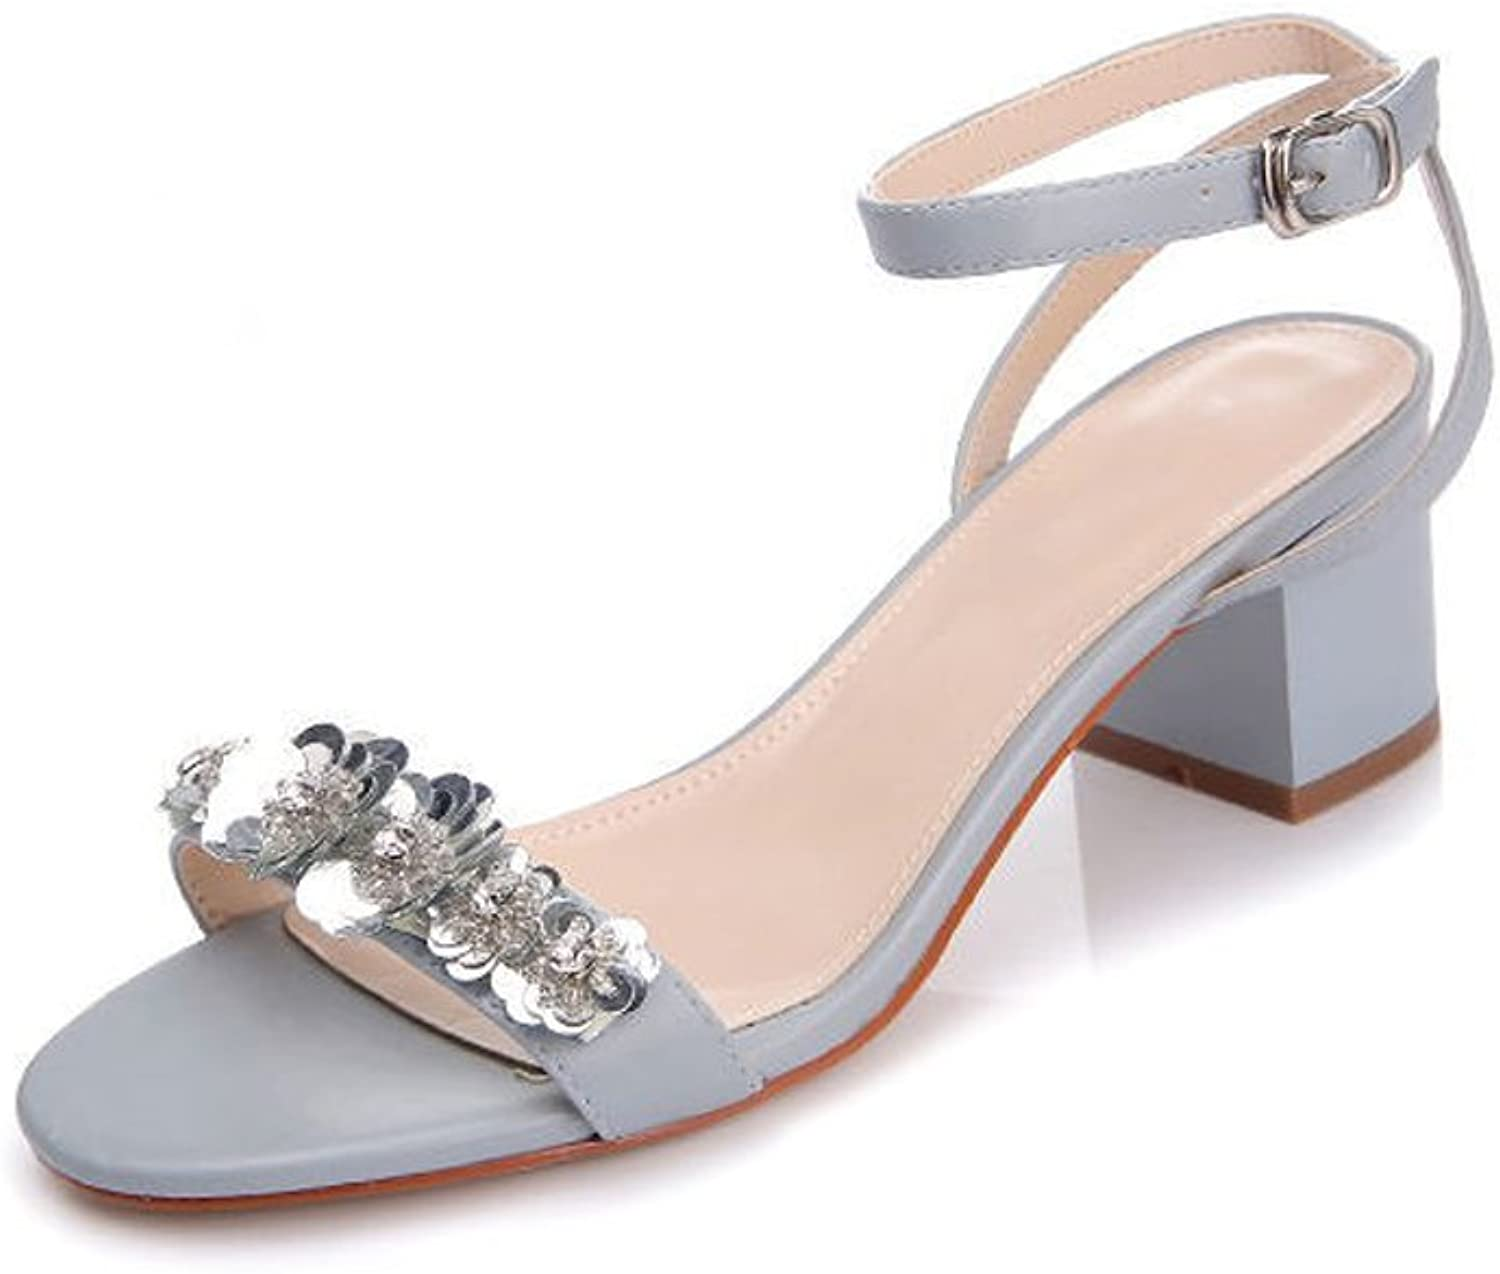 YXLONG Sandals Female Summer New Fashion Sequins Buckle with Coarse with Open Toe Ladies Sandals shoes